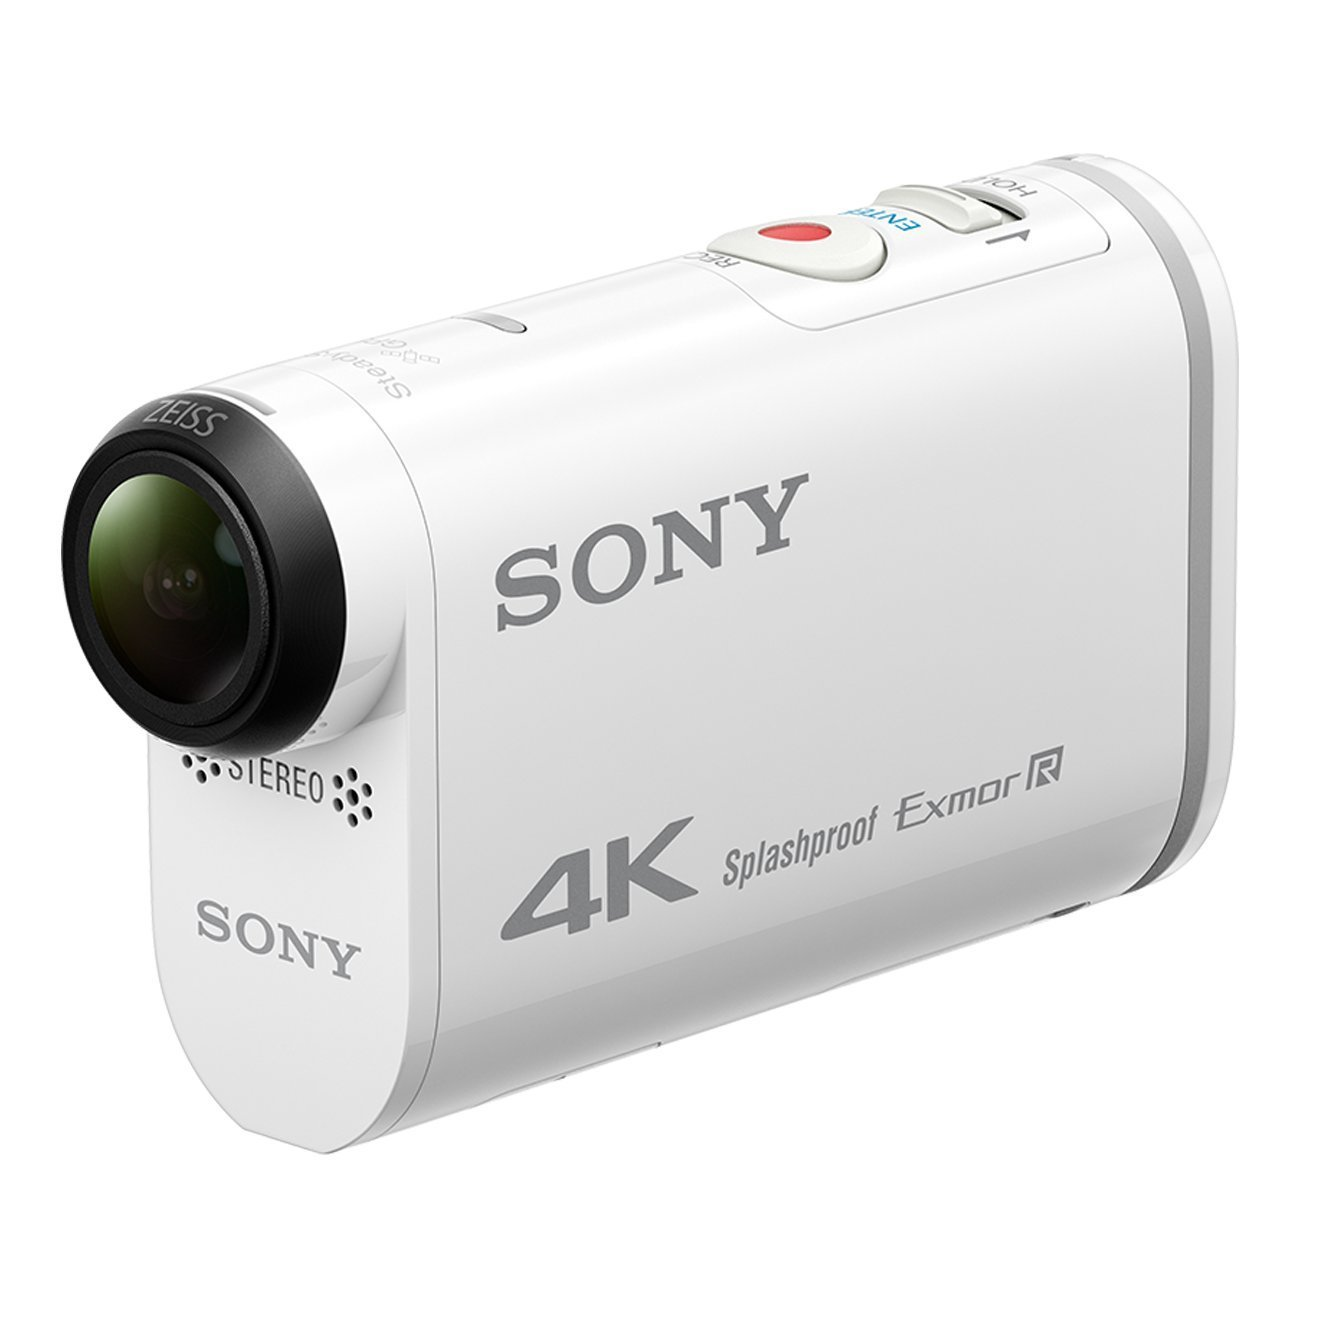 Sony Action Cam FDR-X1000V - Videocámara deportiva (video 4K, resistente a salpicaduras con WI-FI, NFC, GPS y funda resistente al agua), blanco